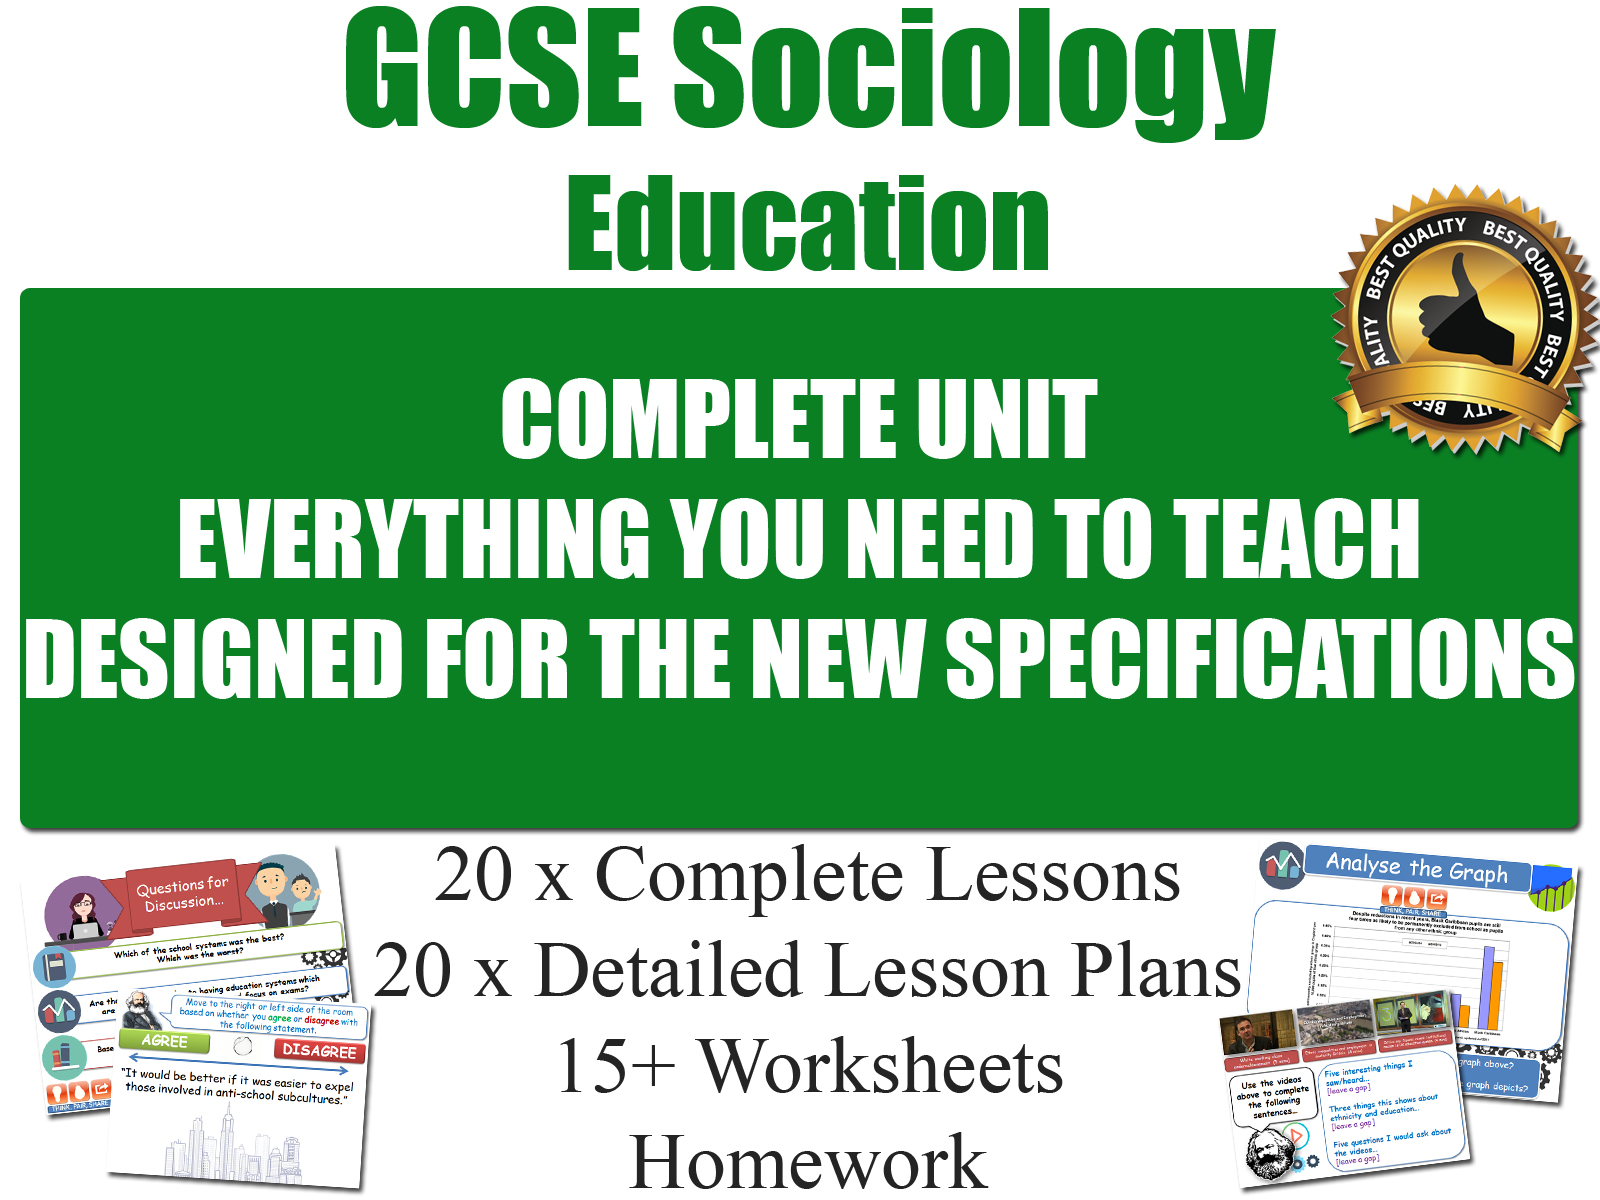 Education Gcse Sociology Resources